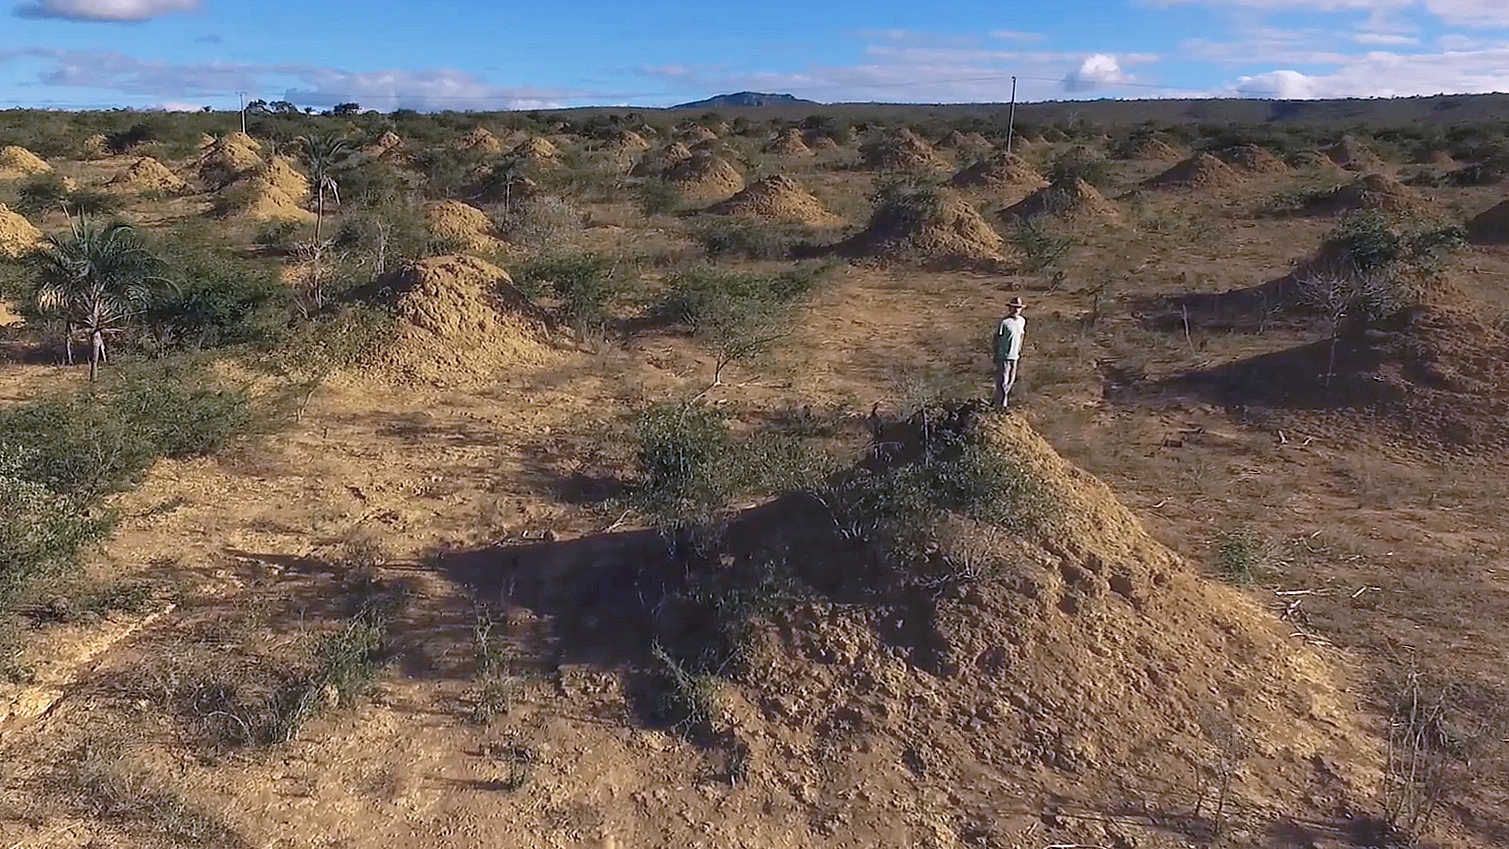 Brazil S 4 000 Year Old Termite Mounds Can Be Seen From Space Cgtn